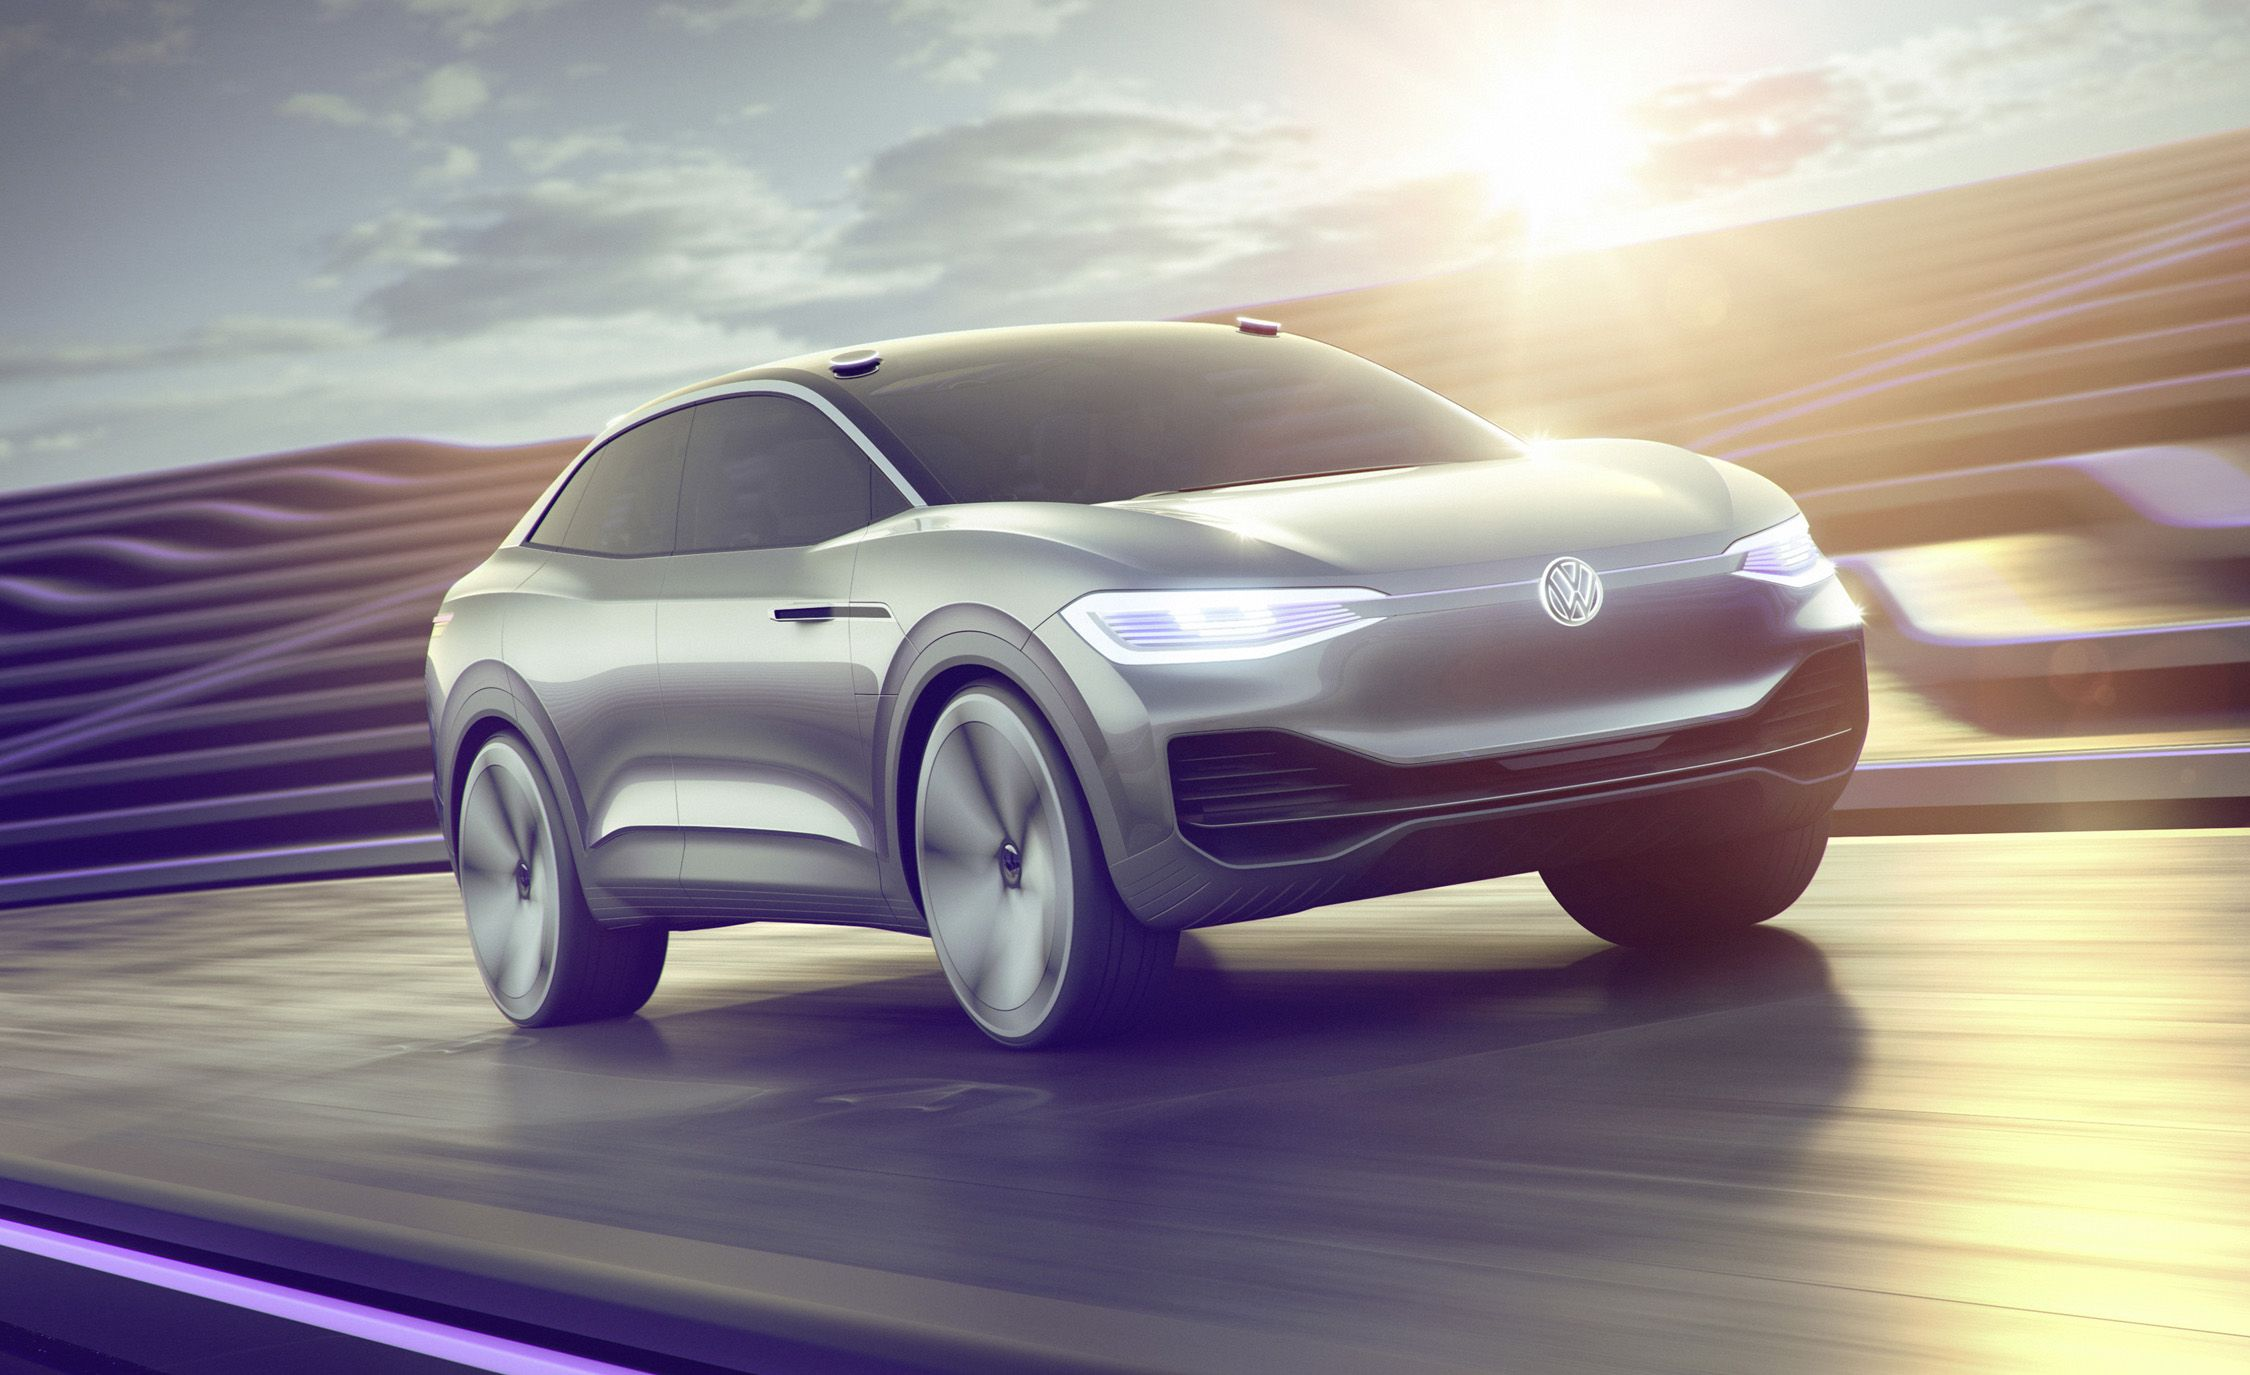 Volkswagen I D Crozz Concept The Ev Crossover That Can Wink Electric Crossover Volkswagen Car